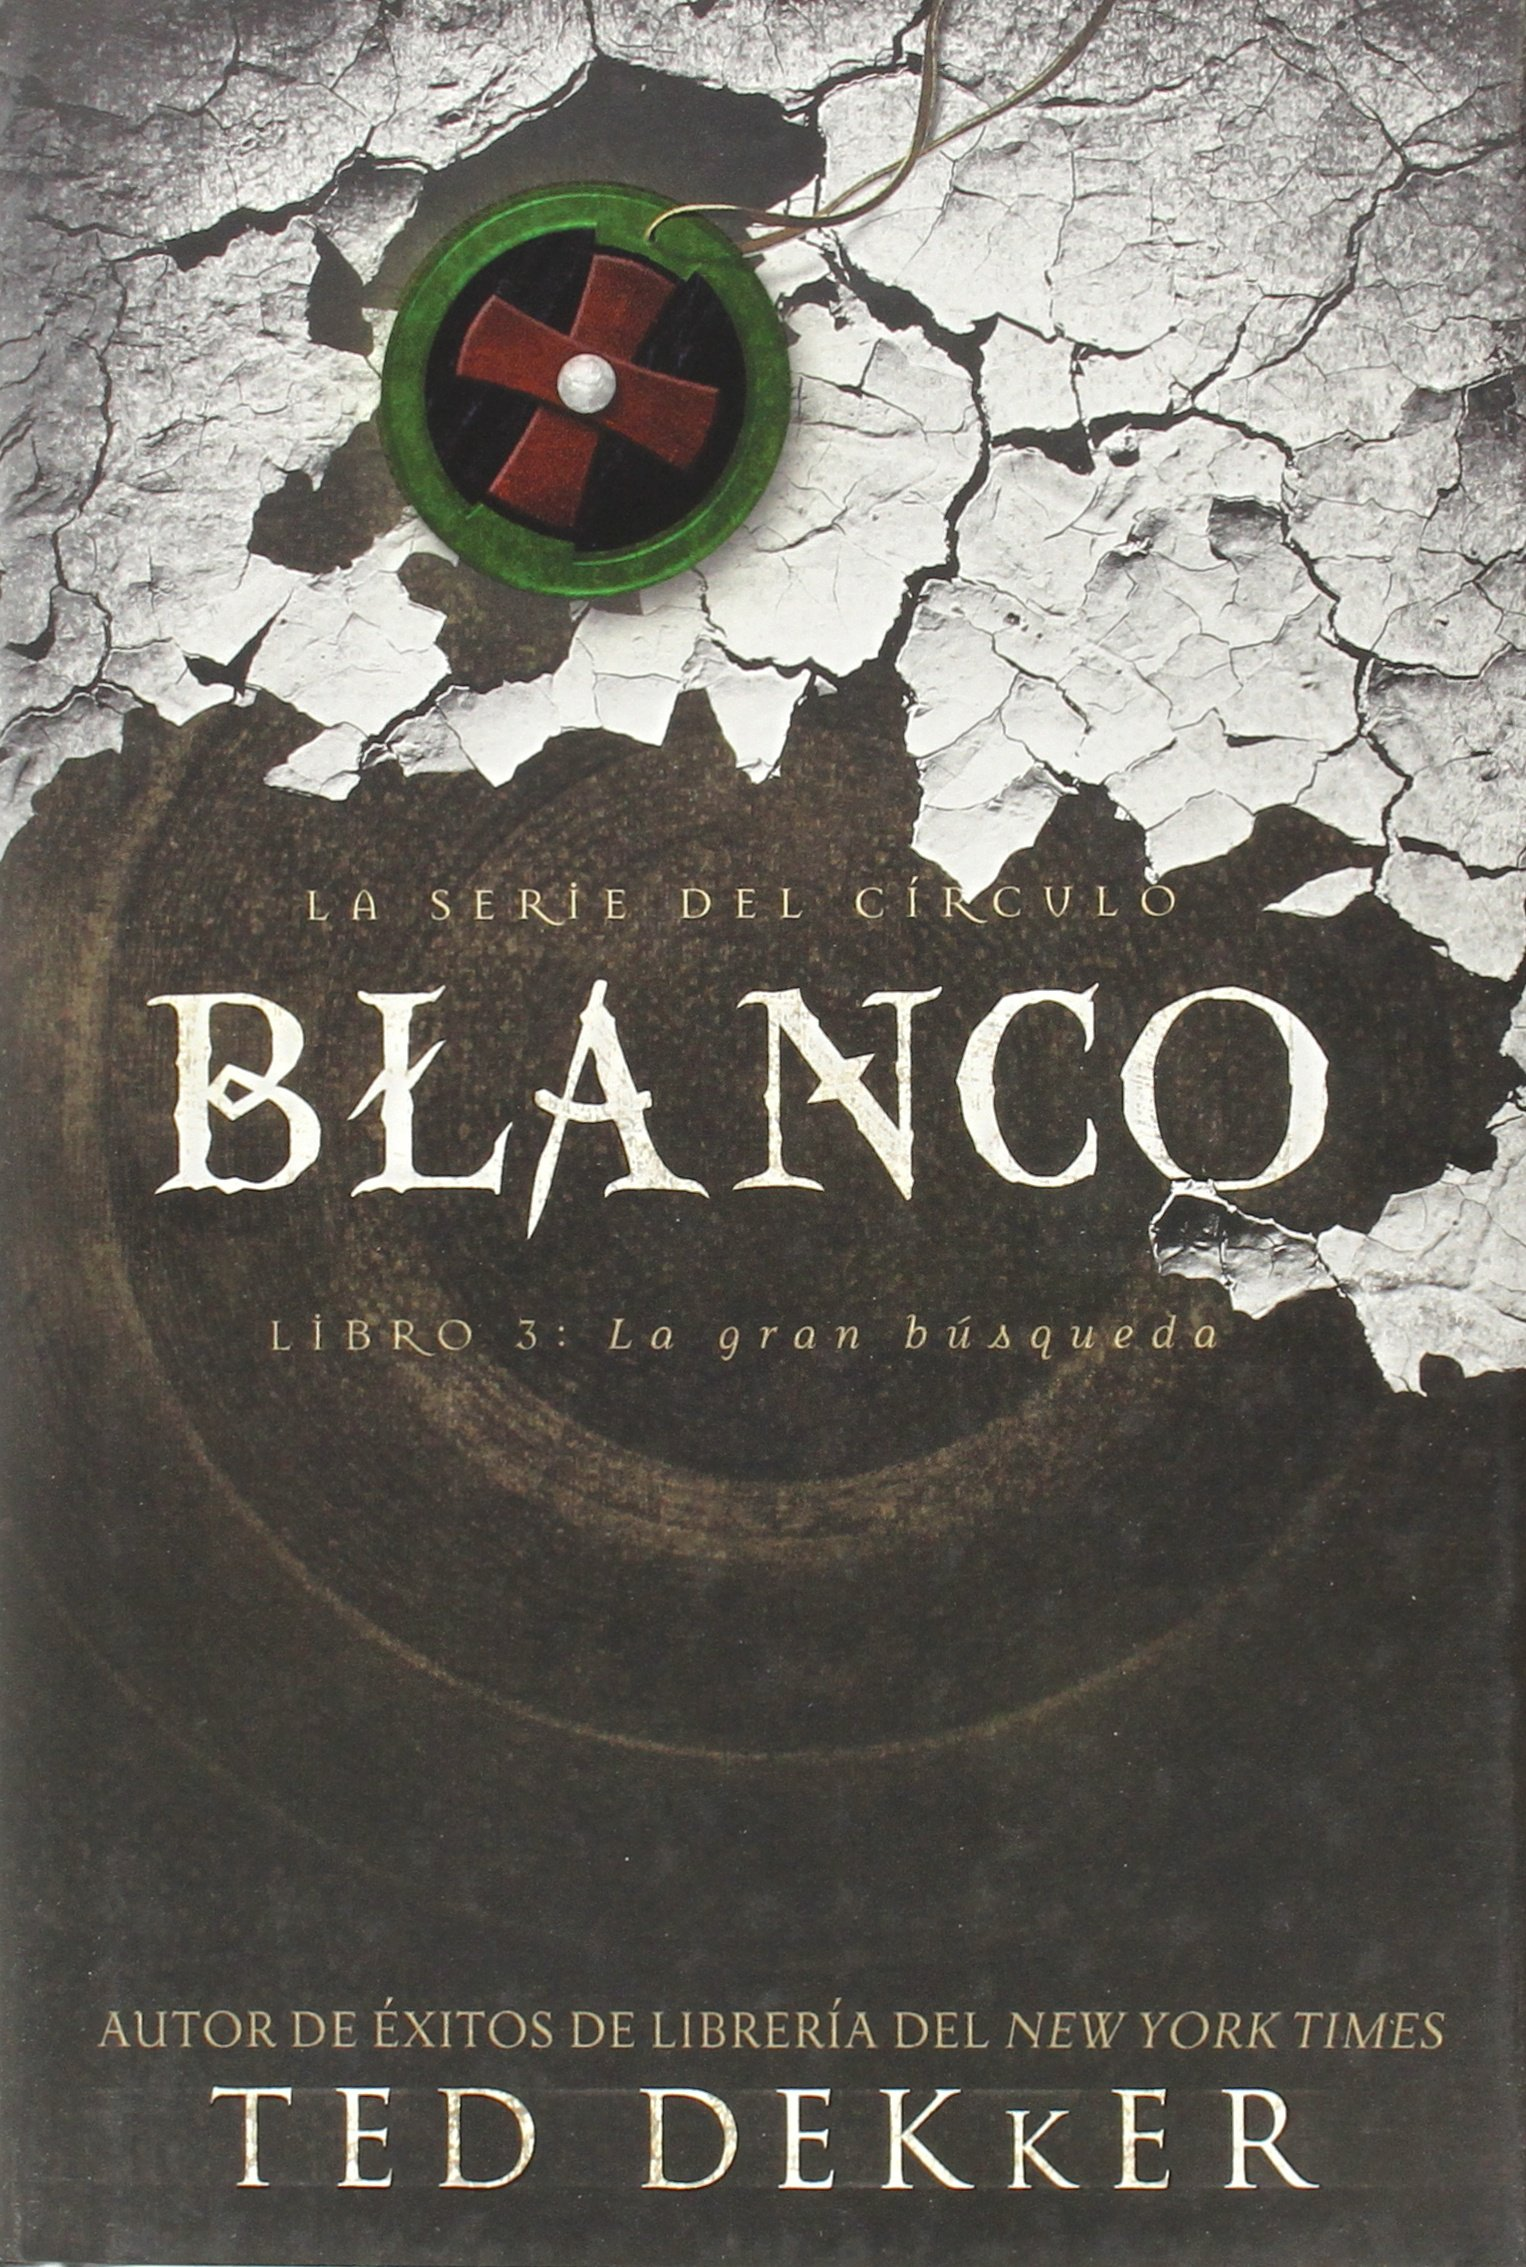 Blanco (La Serie Del Circulo) (Spanish Edition): Ted Dekker: 9781602552166:  Amazon.com: Books